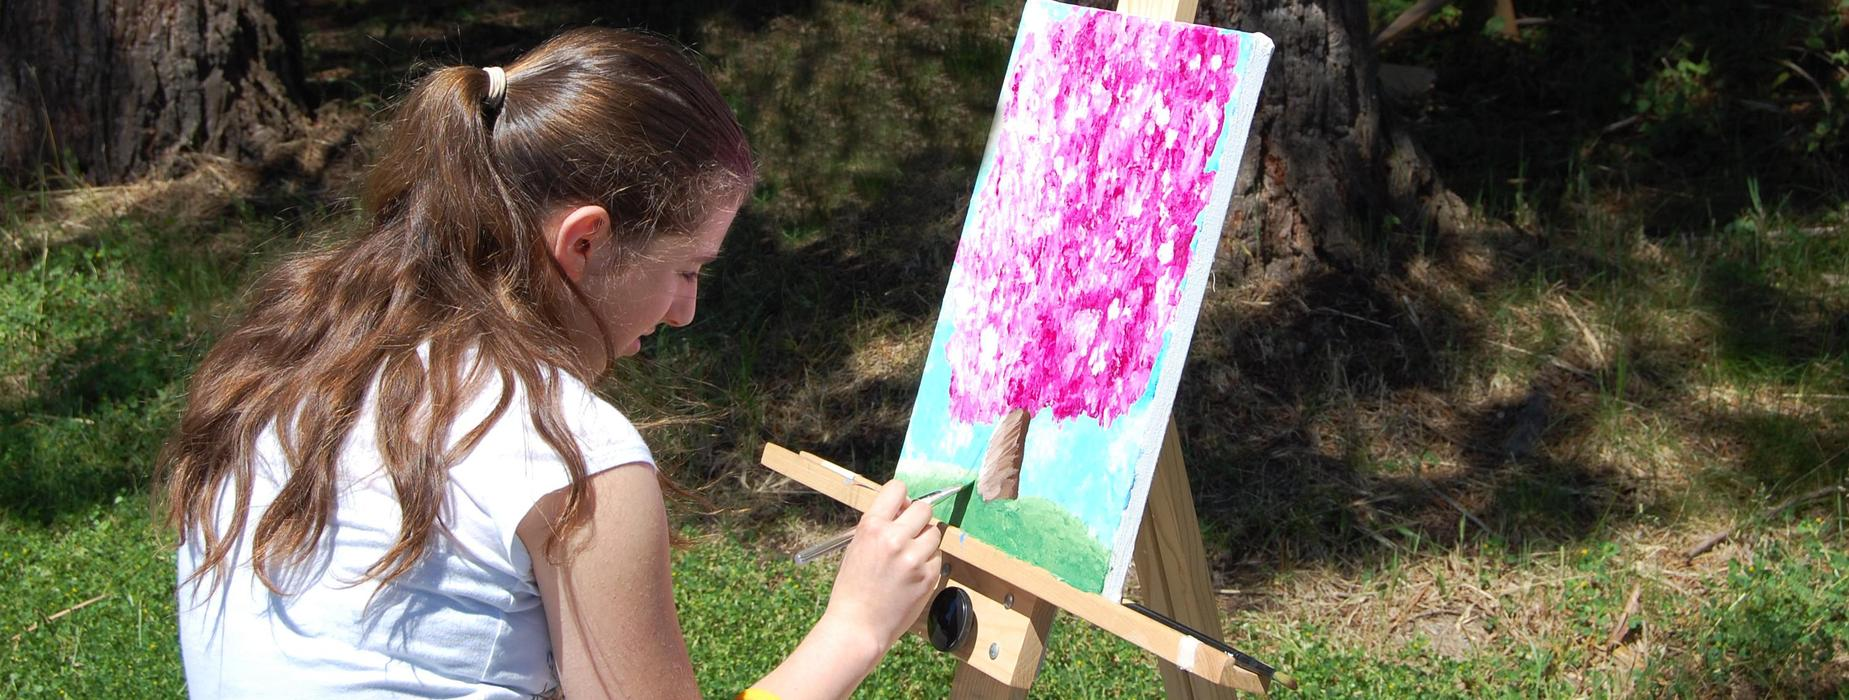 Student painting an apple tree in blossom at an easel outside.